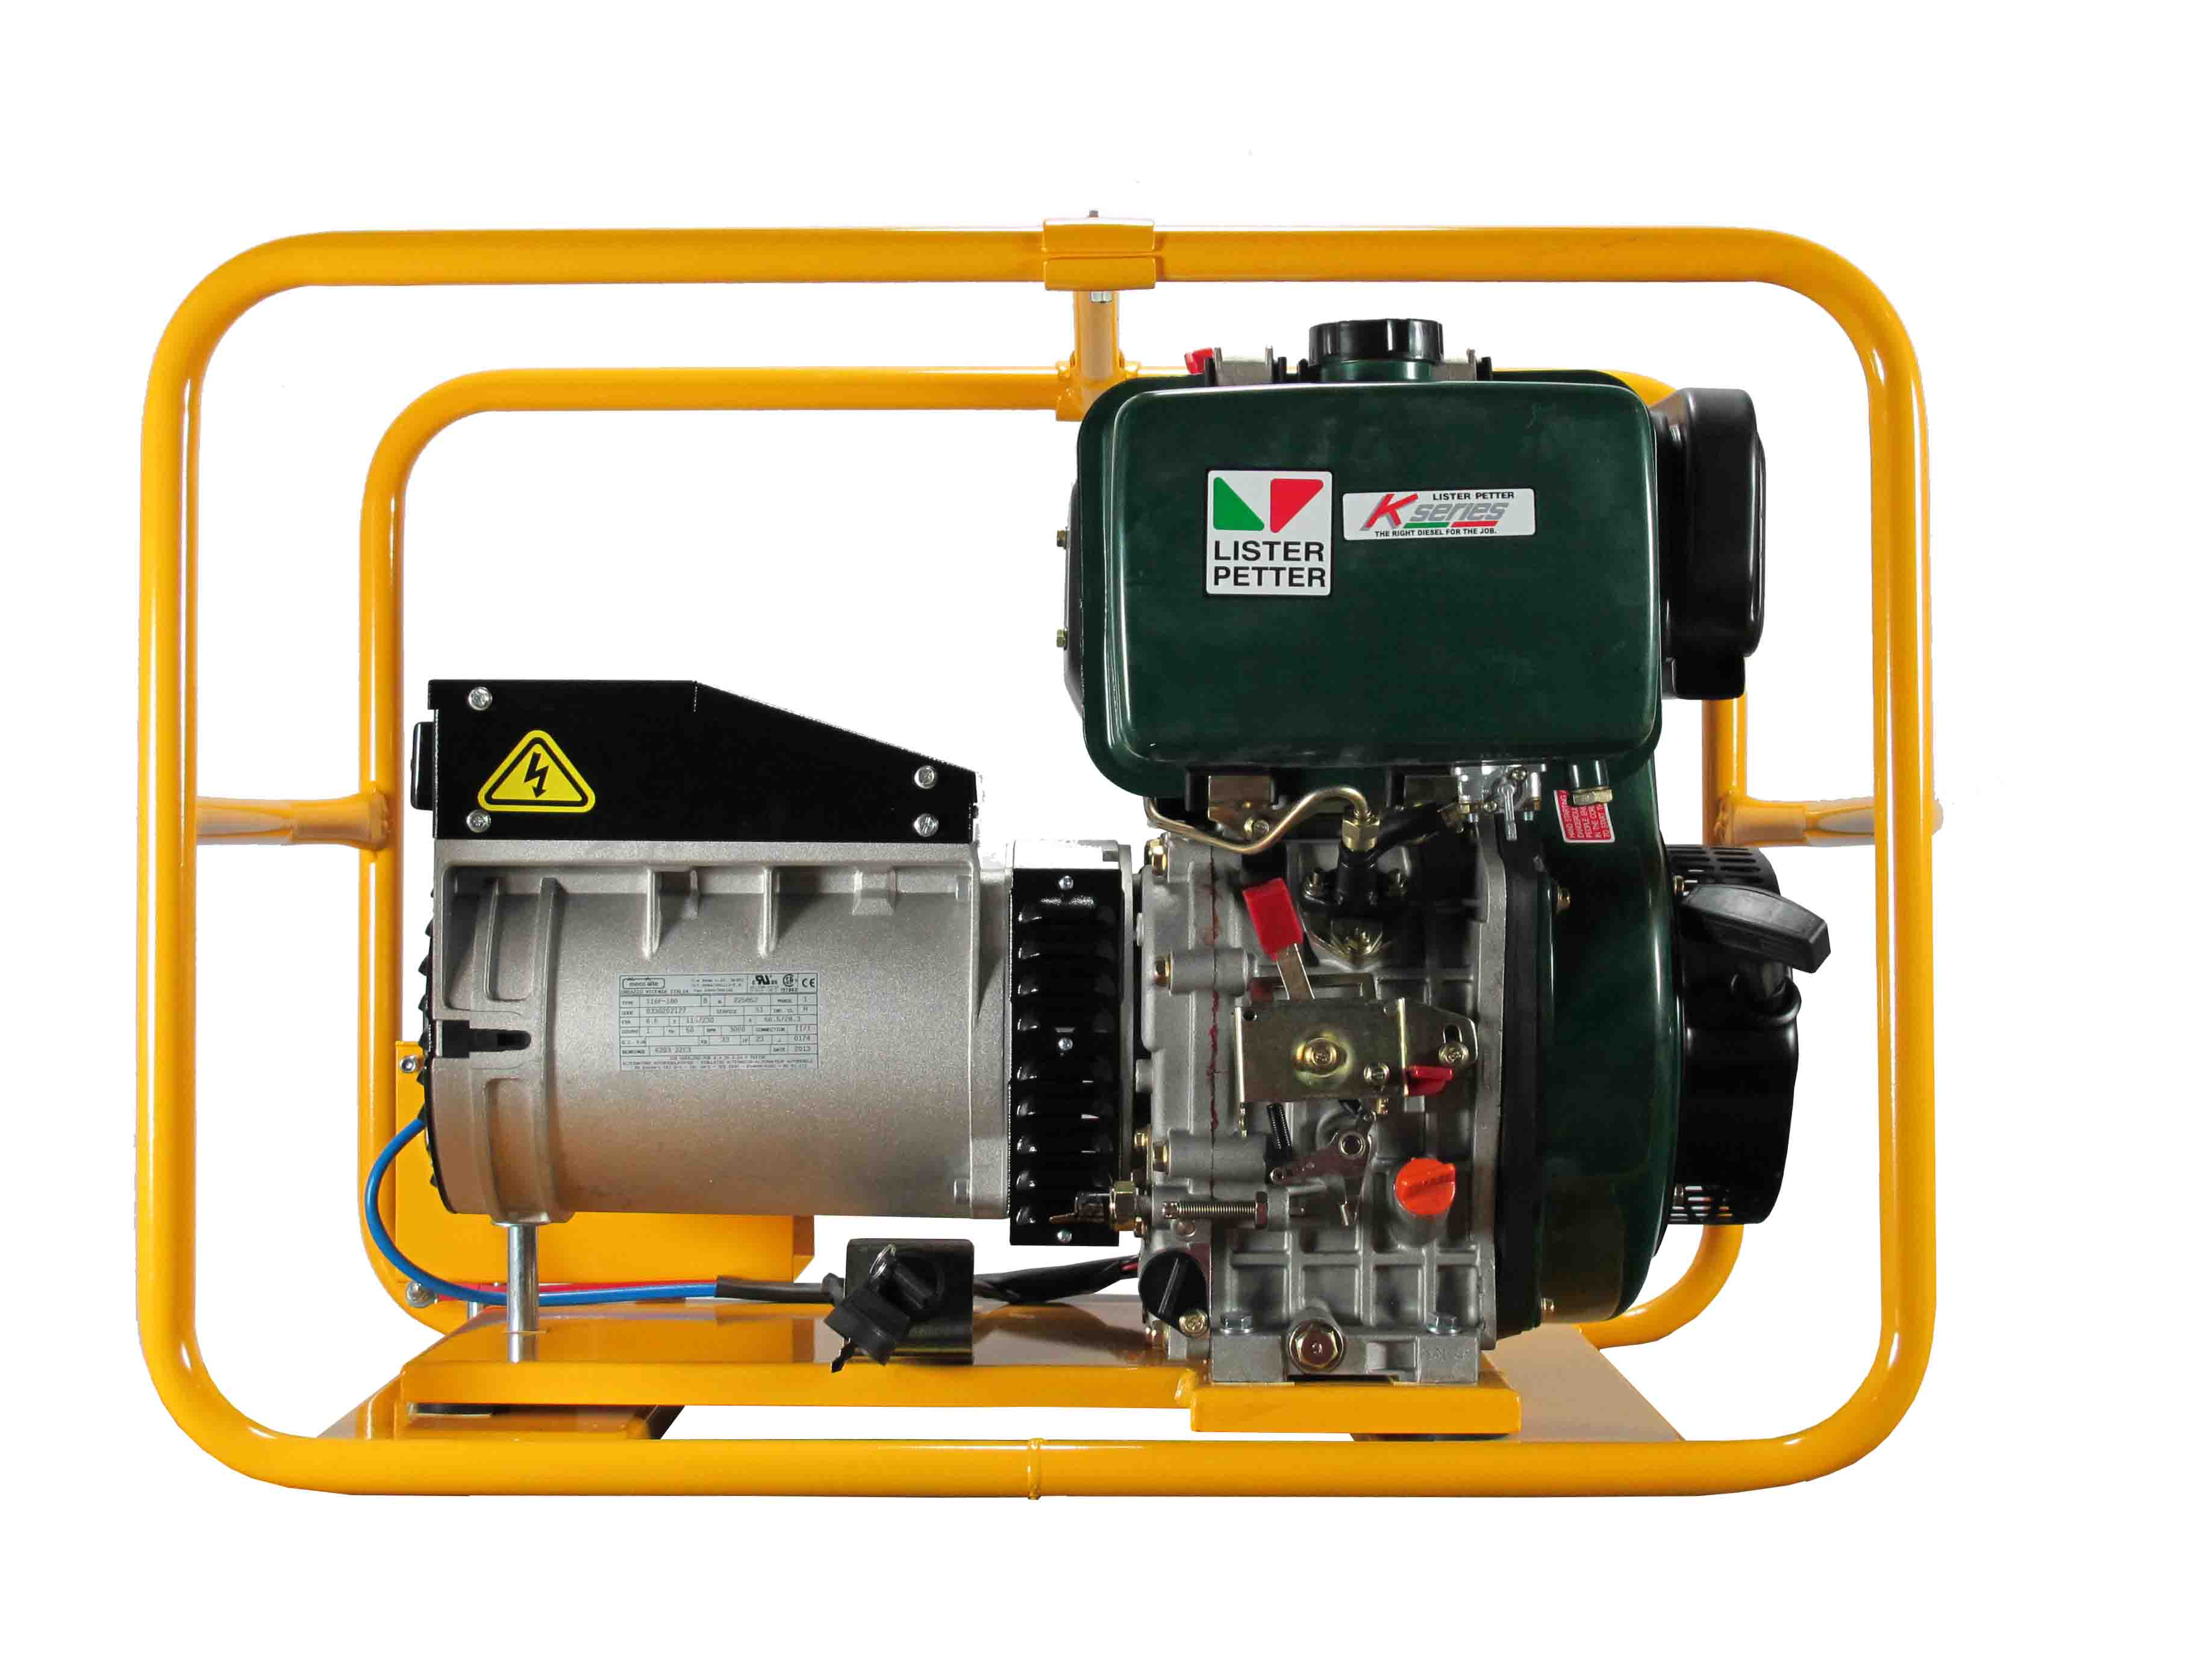 PLD070E – 6 000W Generator with battery